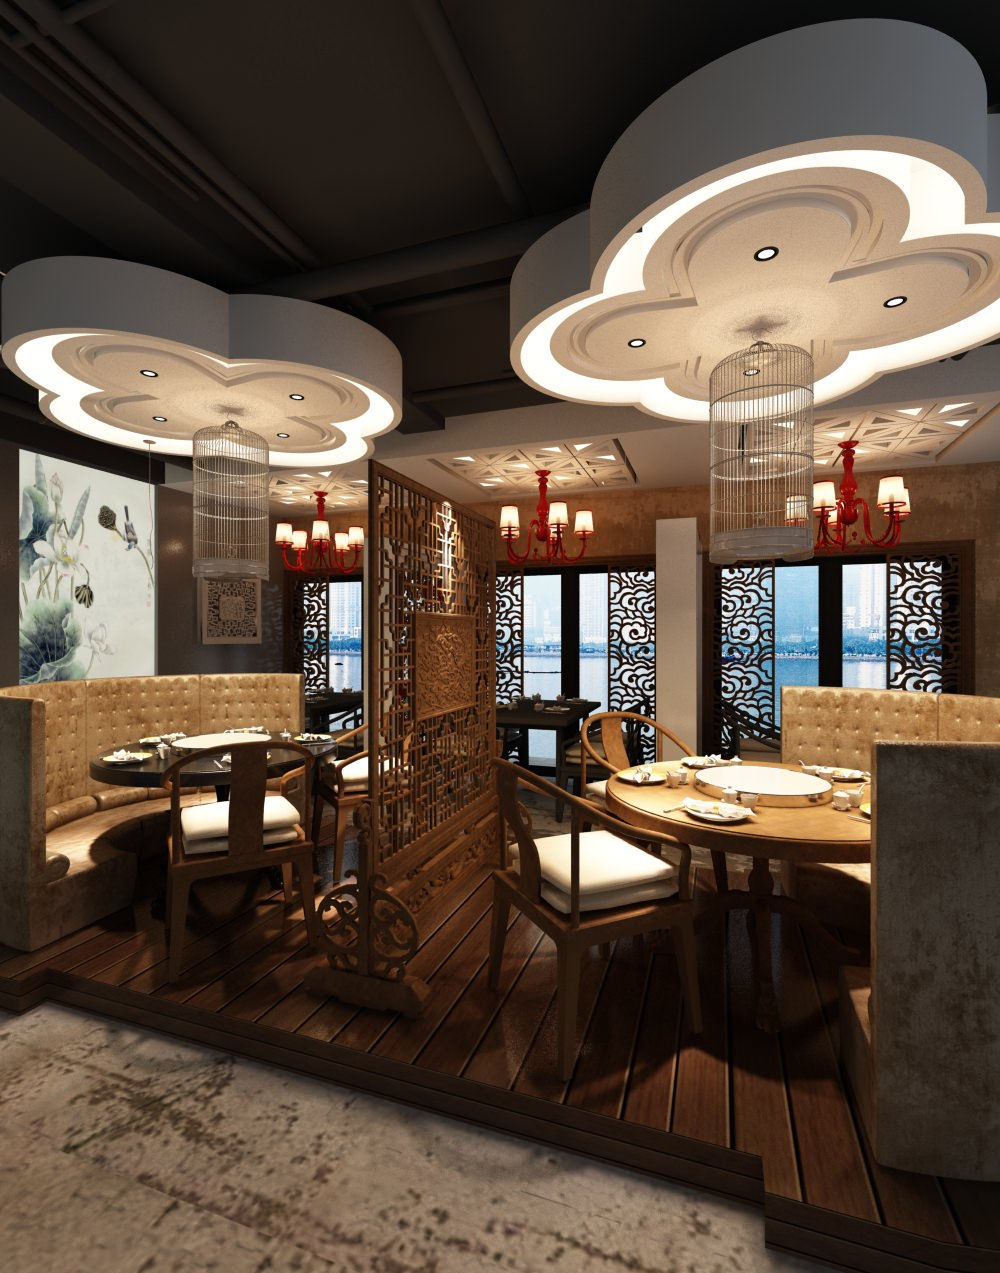 Photorealistic restaurant interior d model max cgtrader